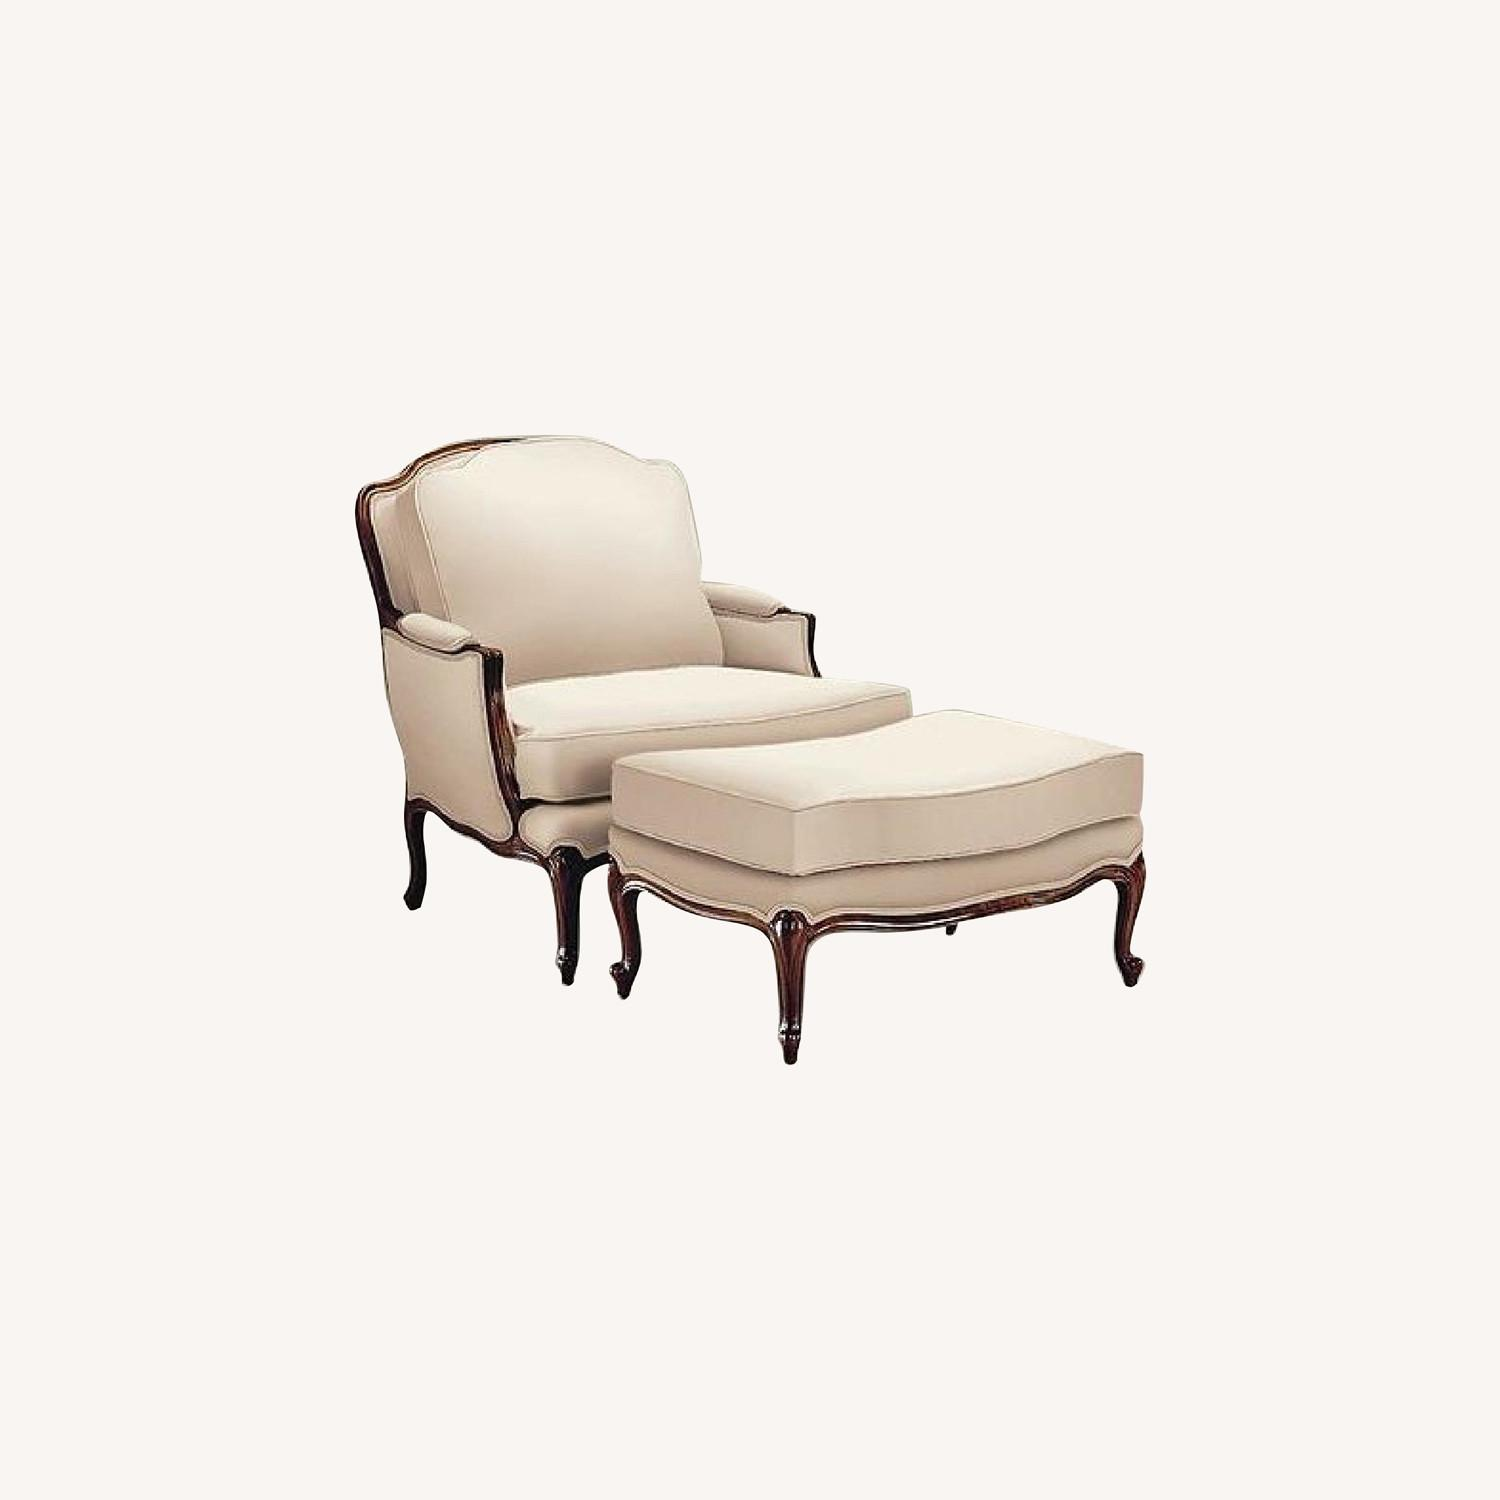 Ethan Allen Versailles Chair and Ottoman - image-0